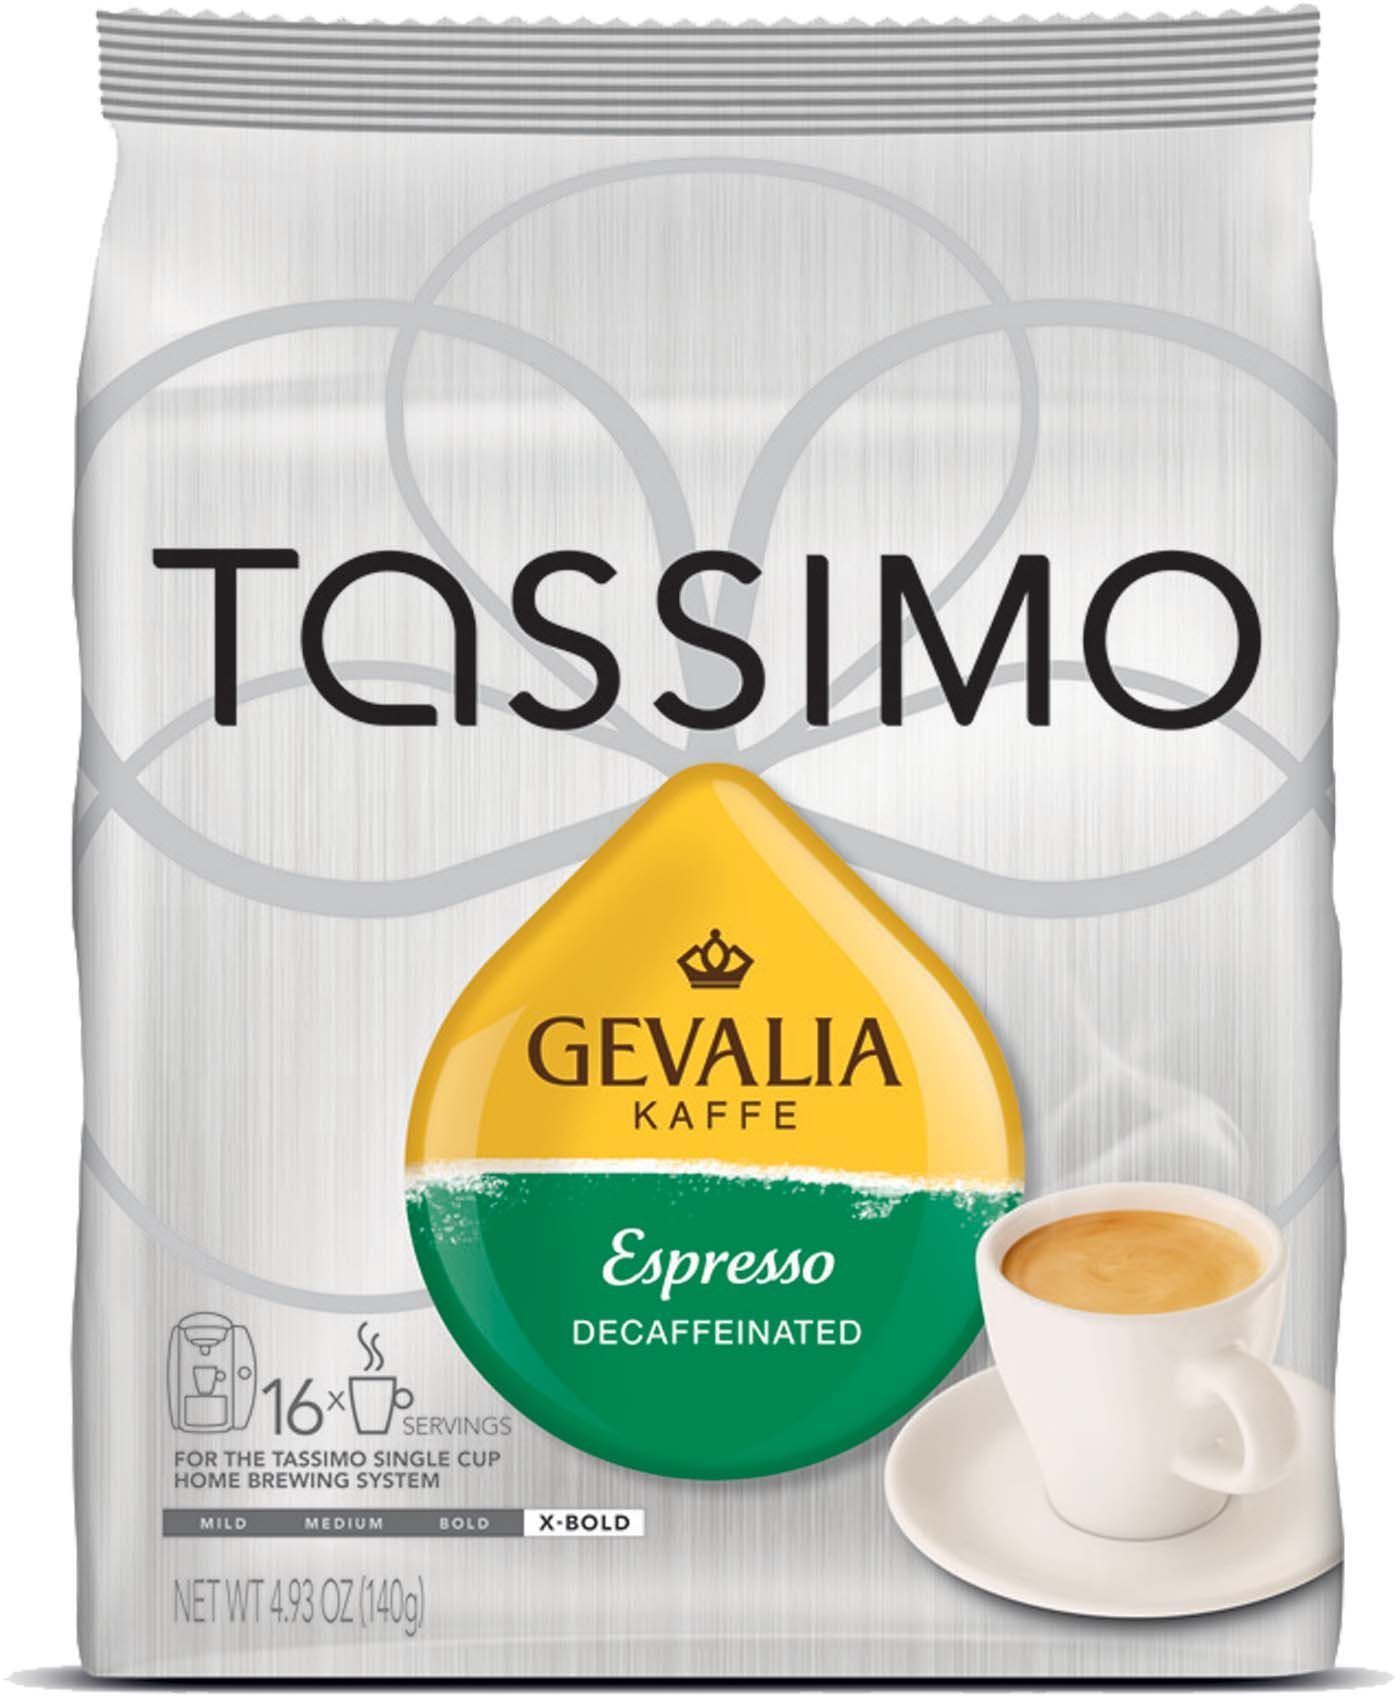 Gevalia Kaffe Decaffeinated Espresso for Tassimo brewers, 16 count (Pack of 2)